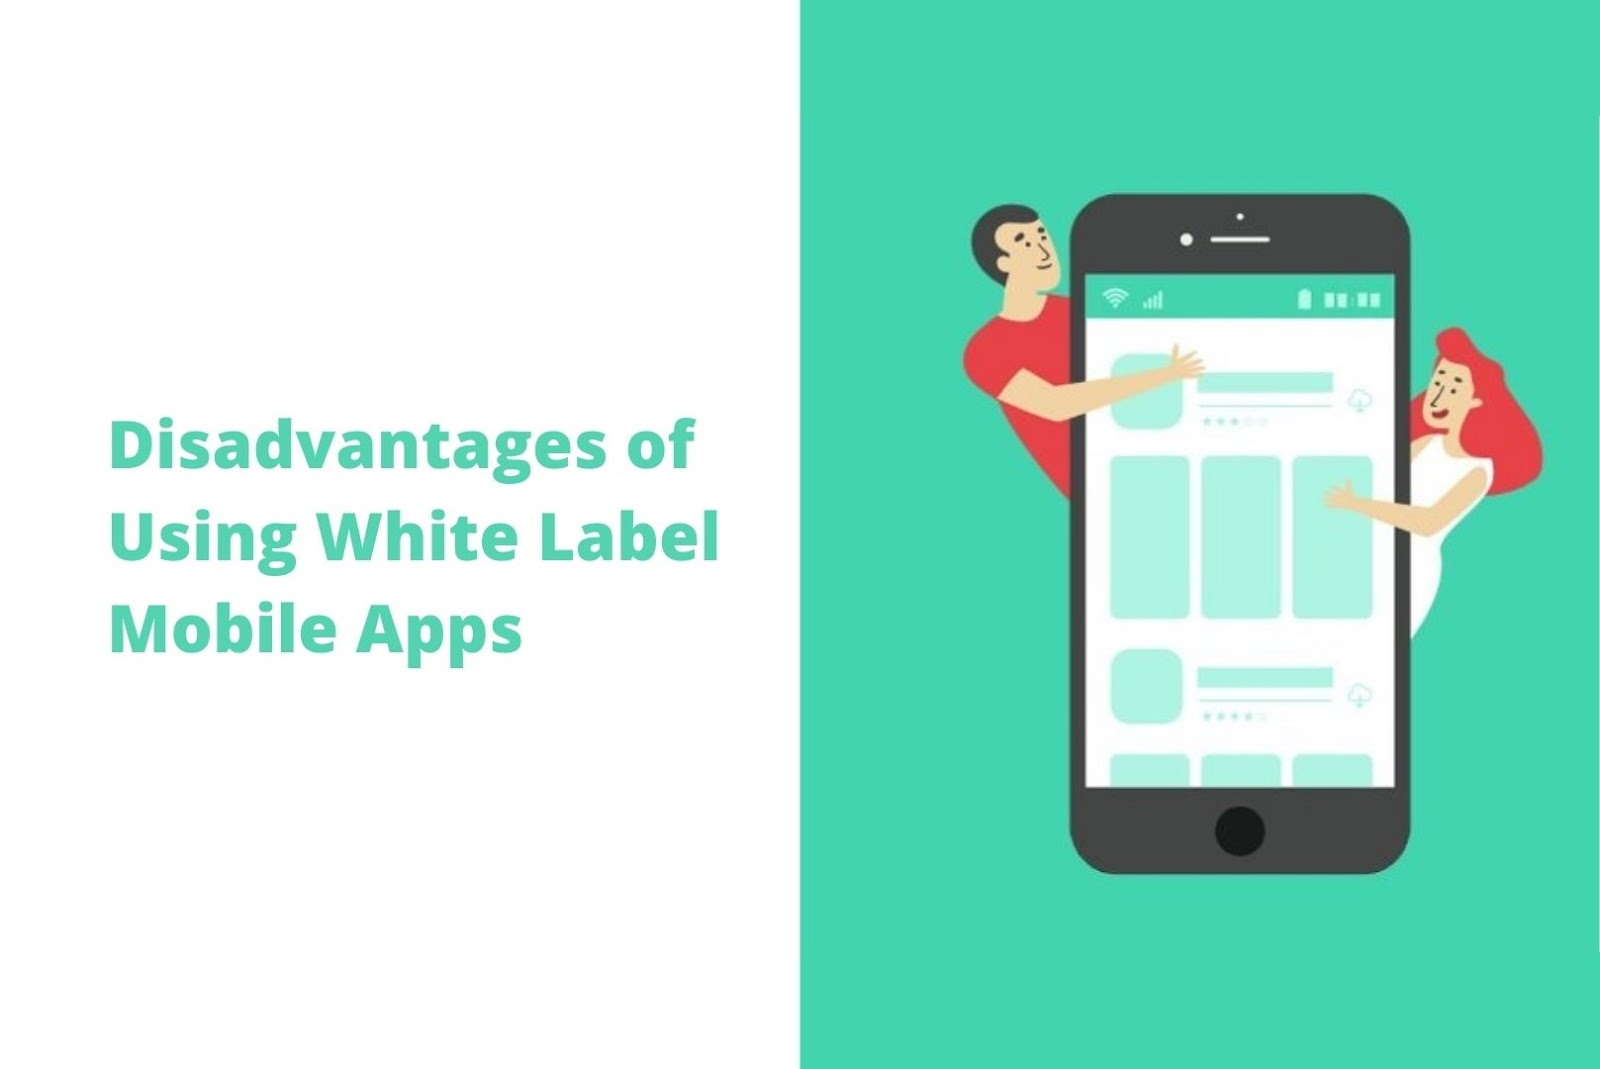 Disadvantages of white label mobile apps